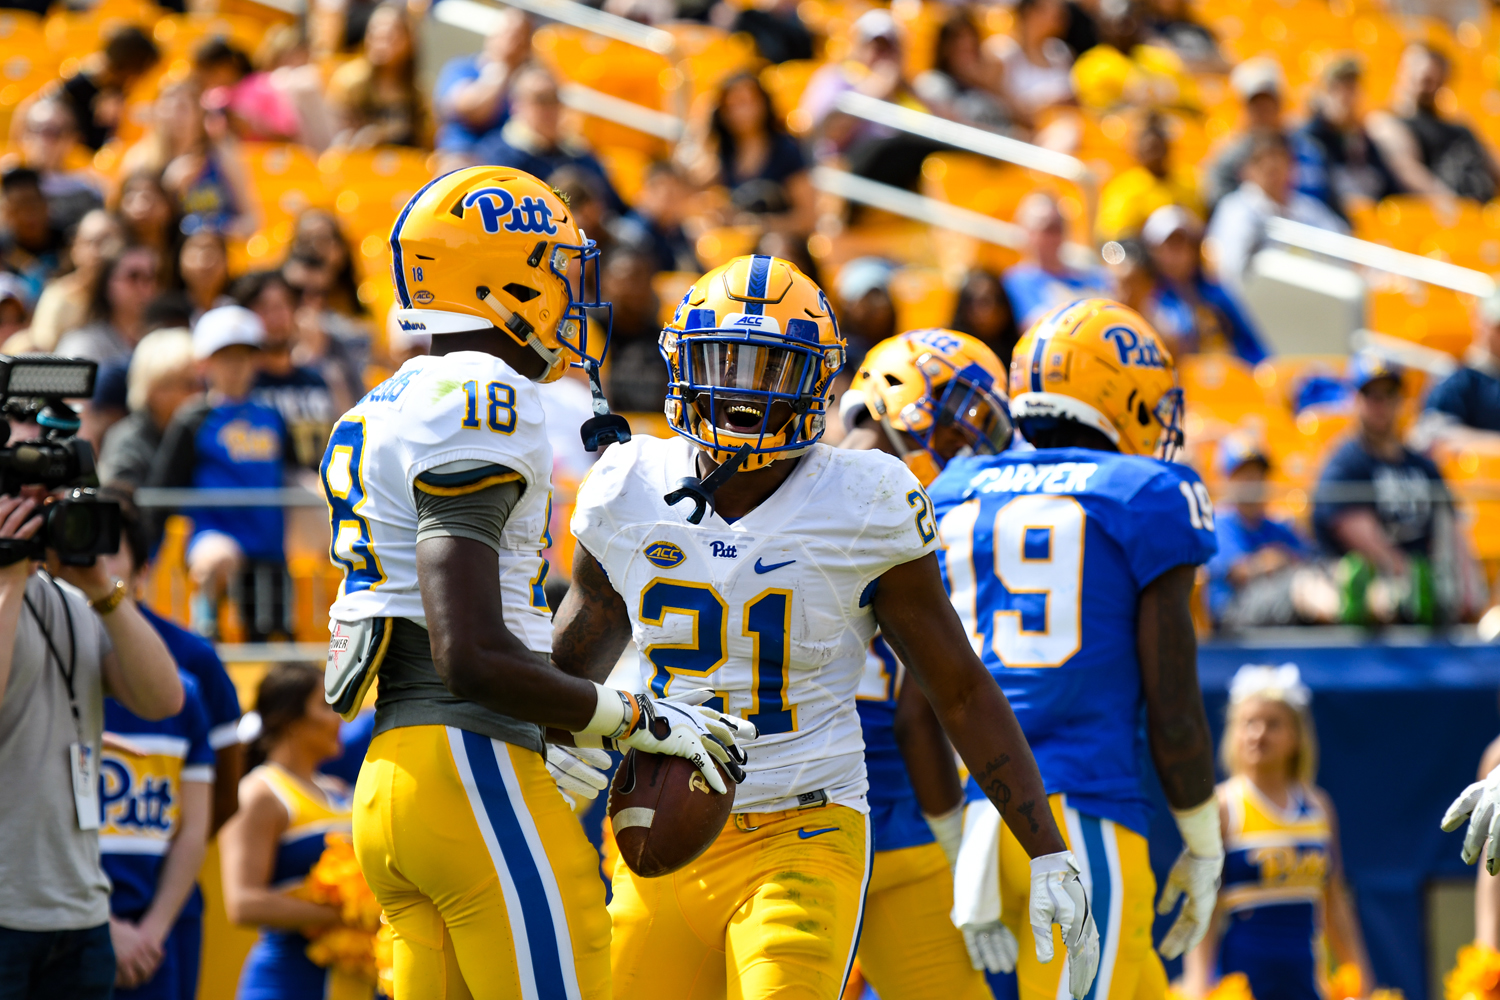 Junior running back A. J. Davis (21) and sophomore wide receiver Shocky Jacques-Louis (18) celebrate during Pitt's spring Blue-Gold game on Saturday.